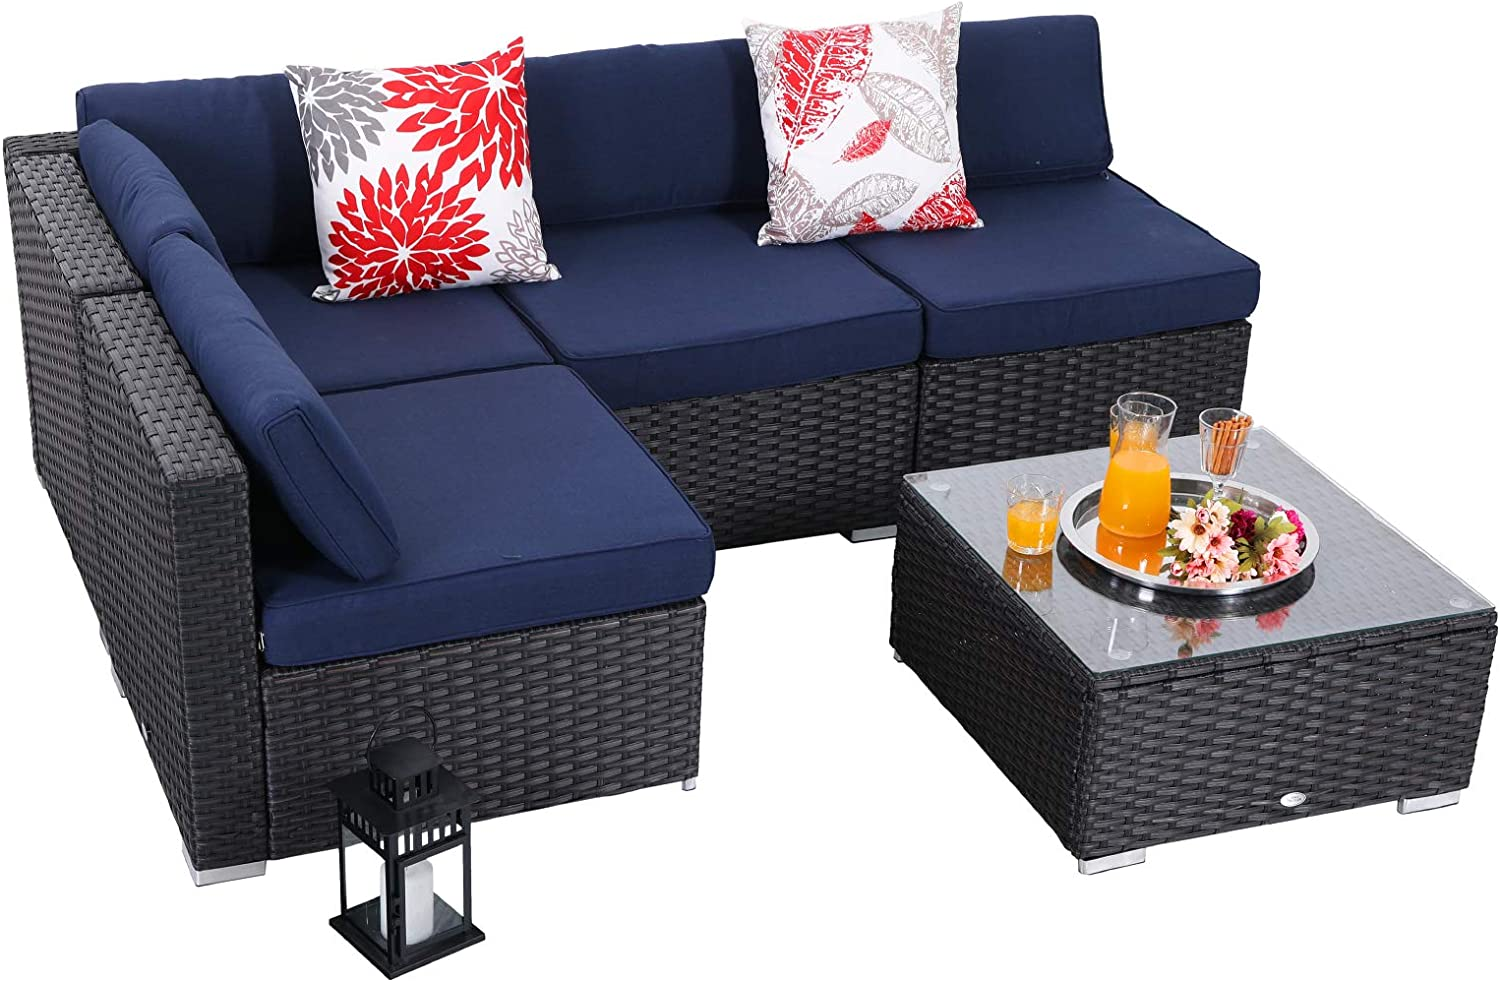 Phi Villa 5 Piece Outdoor Furniture Set Rattan Wicker Patio Sectional Sofa With Low Back And Tea Table Navy Blue Garden Outdoor